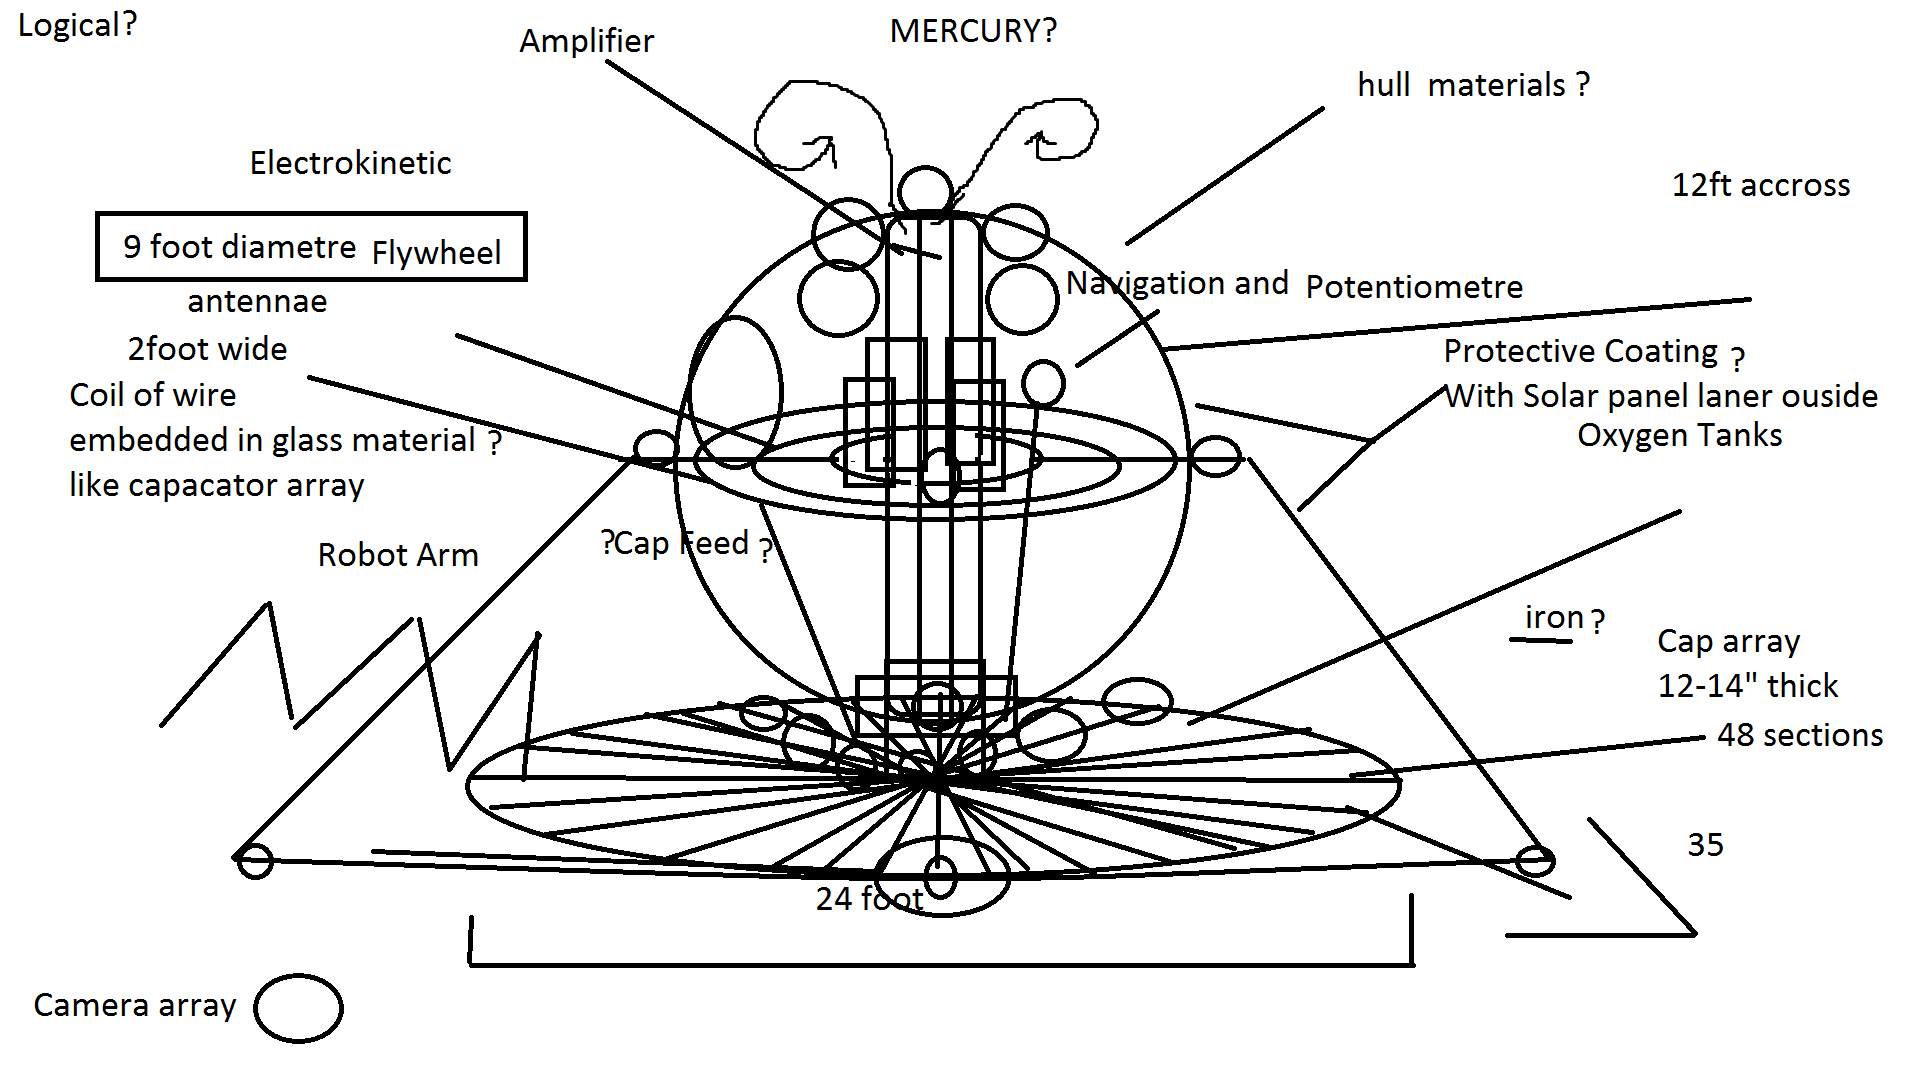 Mercury Engine Diagram Wiring Diagram For Mercury Outboard Wiring Discover Your Com Acirc Reg